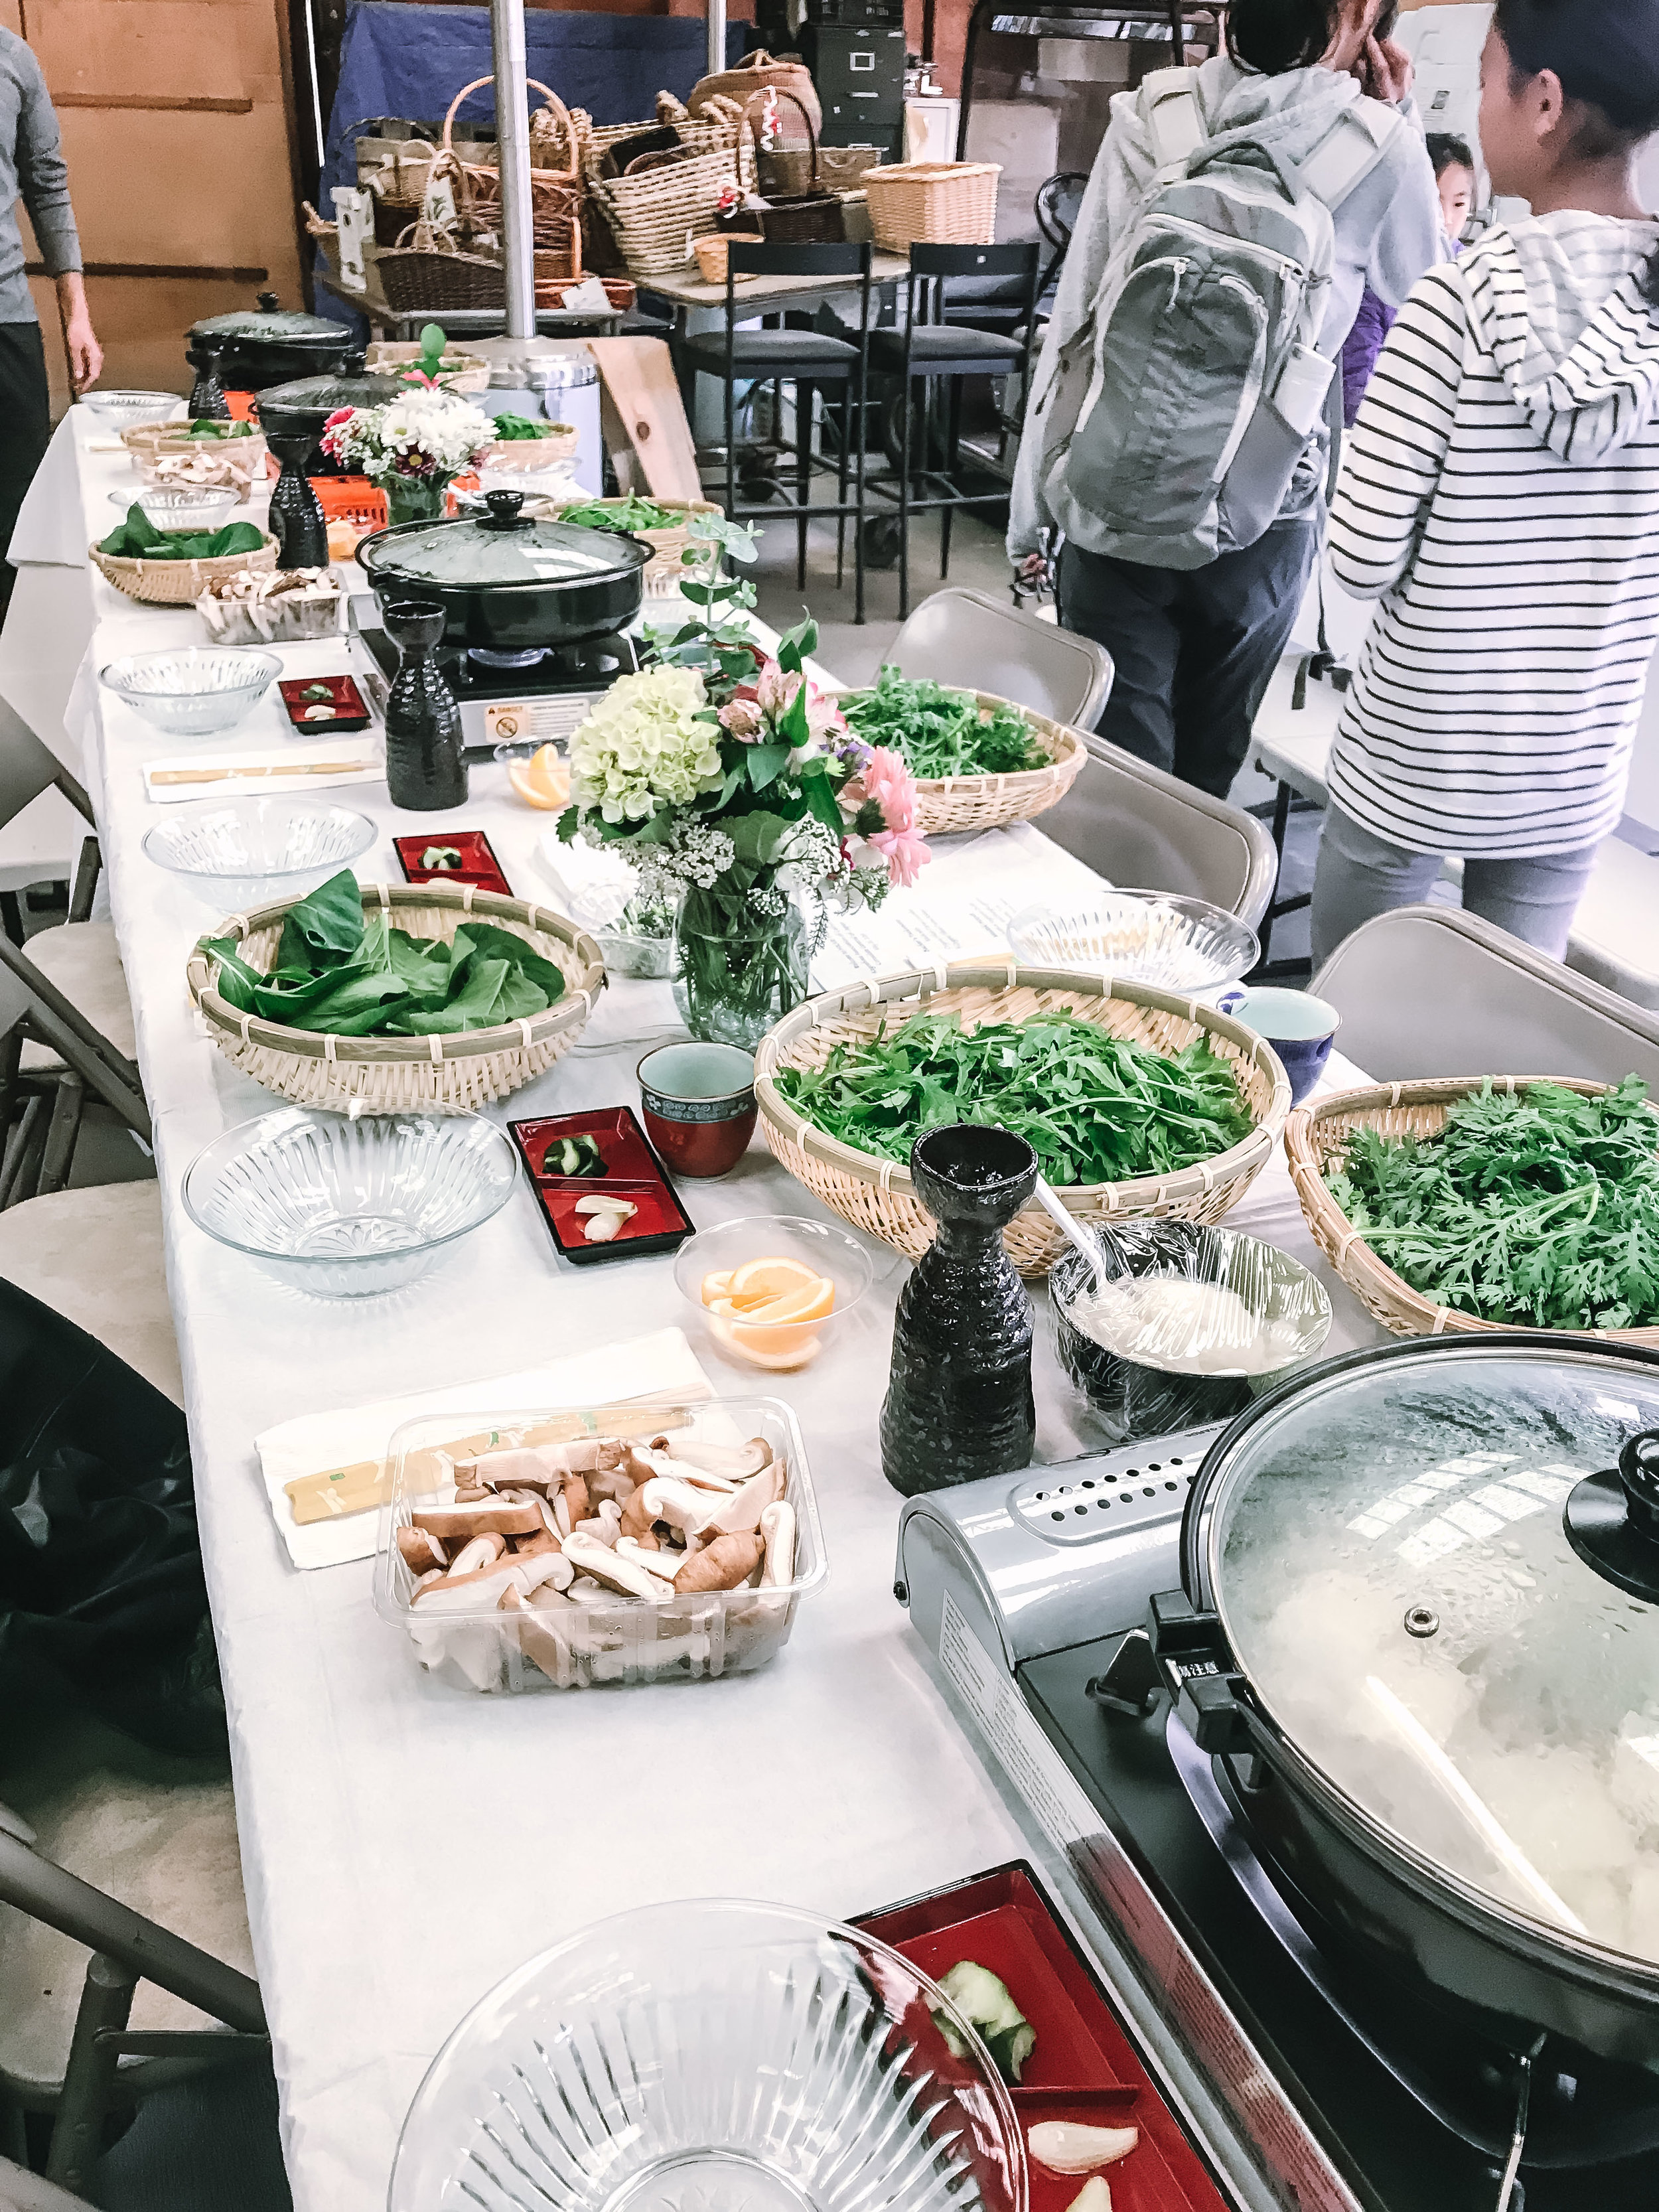 The incredible lunch spread: Nabe hot pot, with almost all ingredients harvested from the farm!